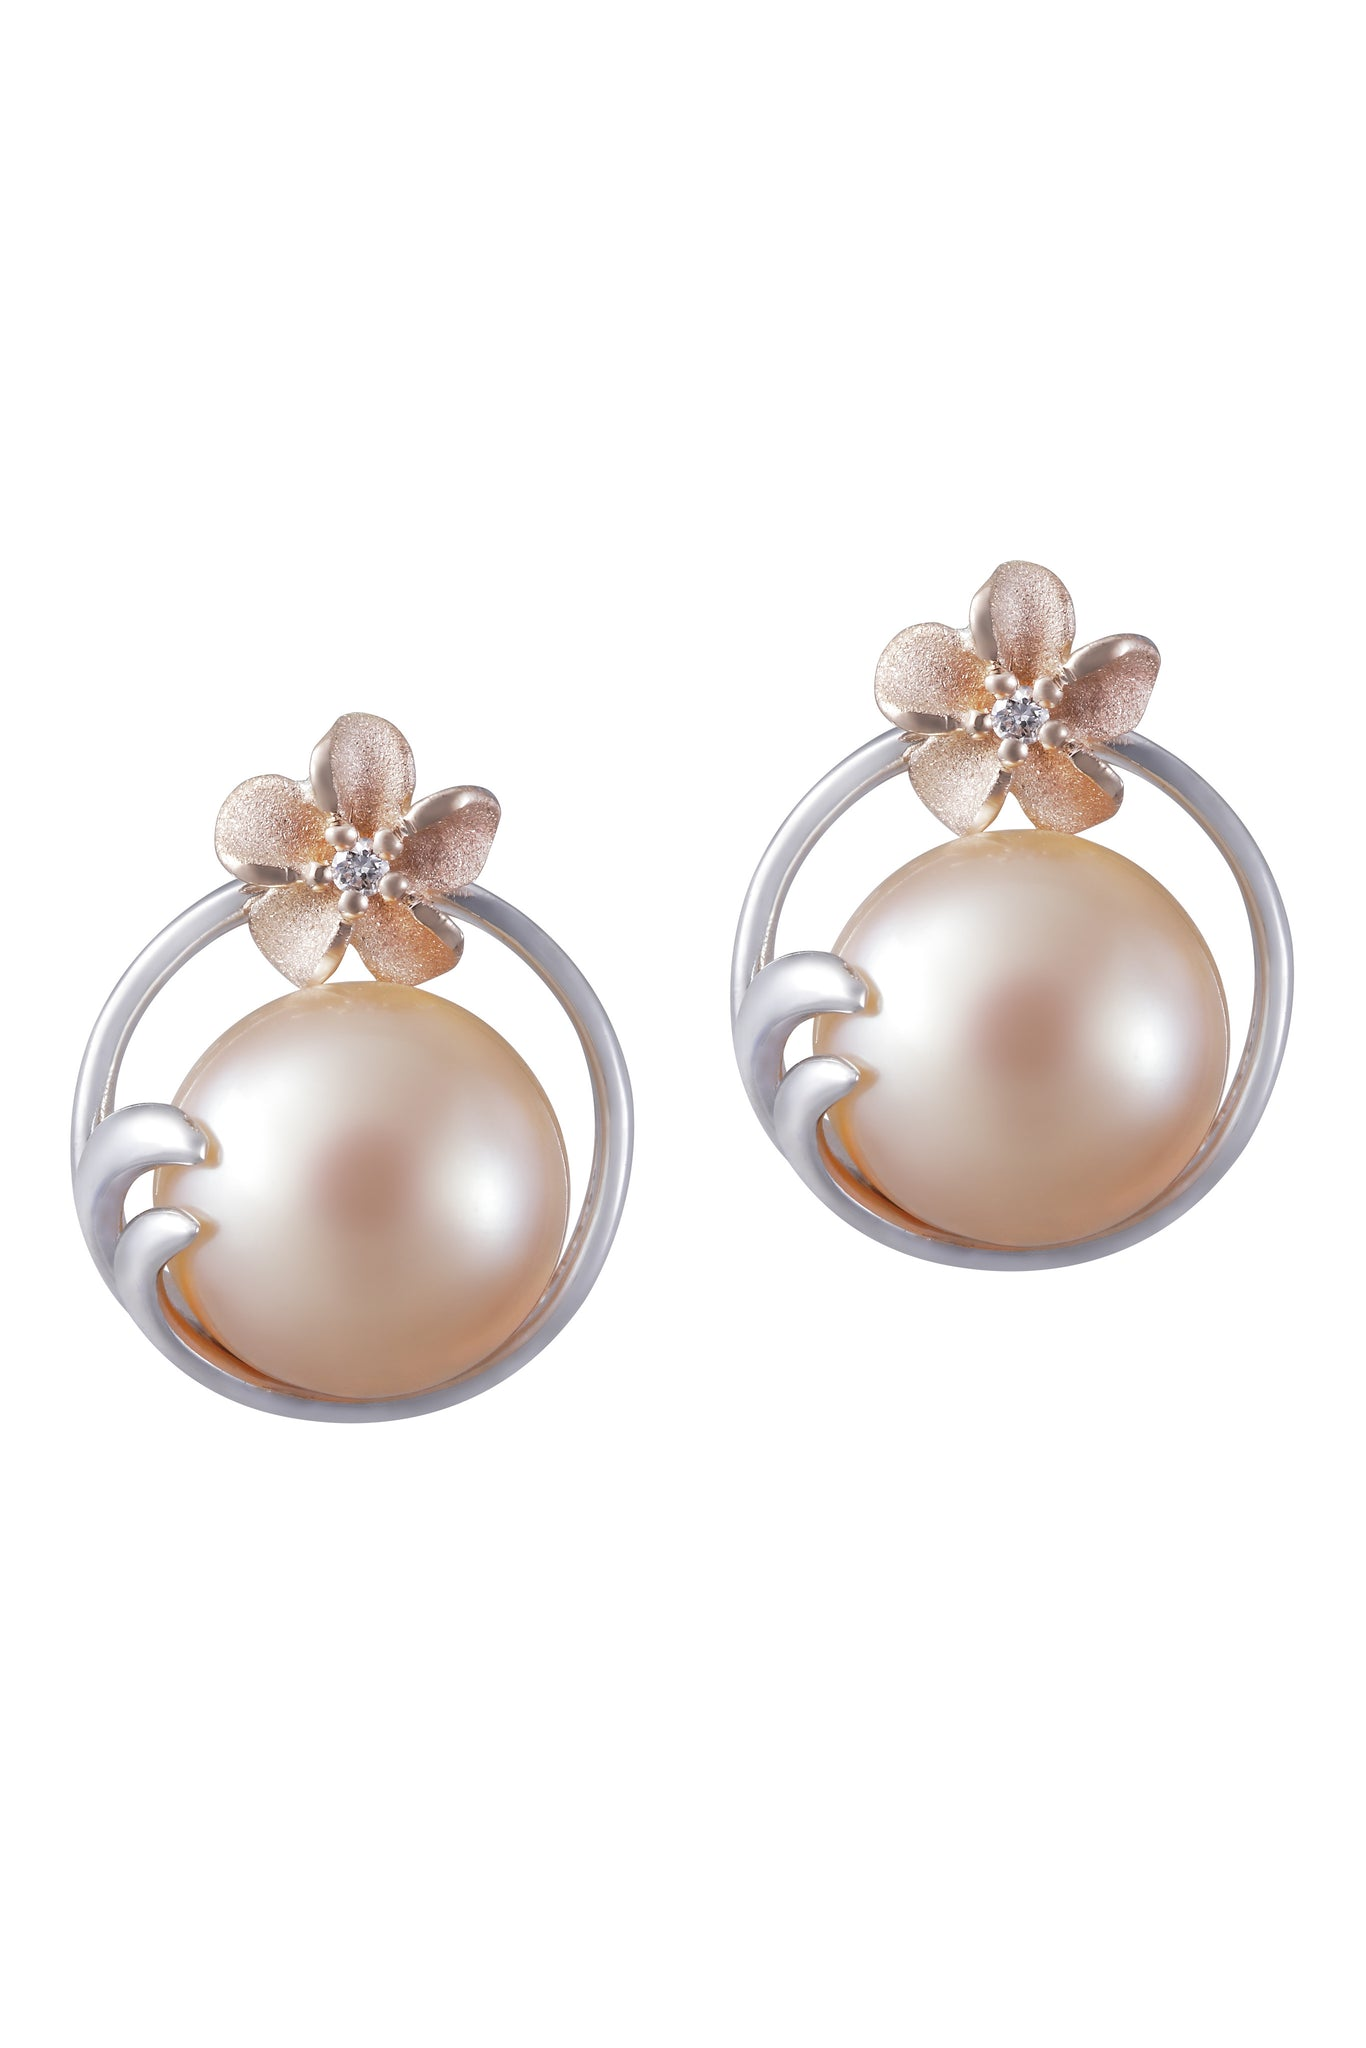 Plumeria and 9-9.5mm Peach Fresh Water Cultured Pearl Earrings